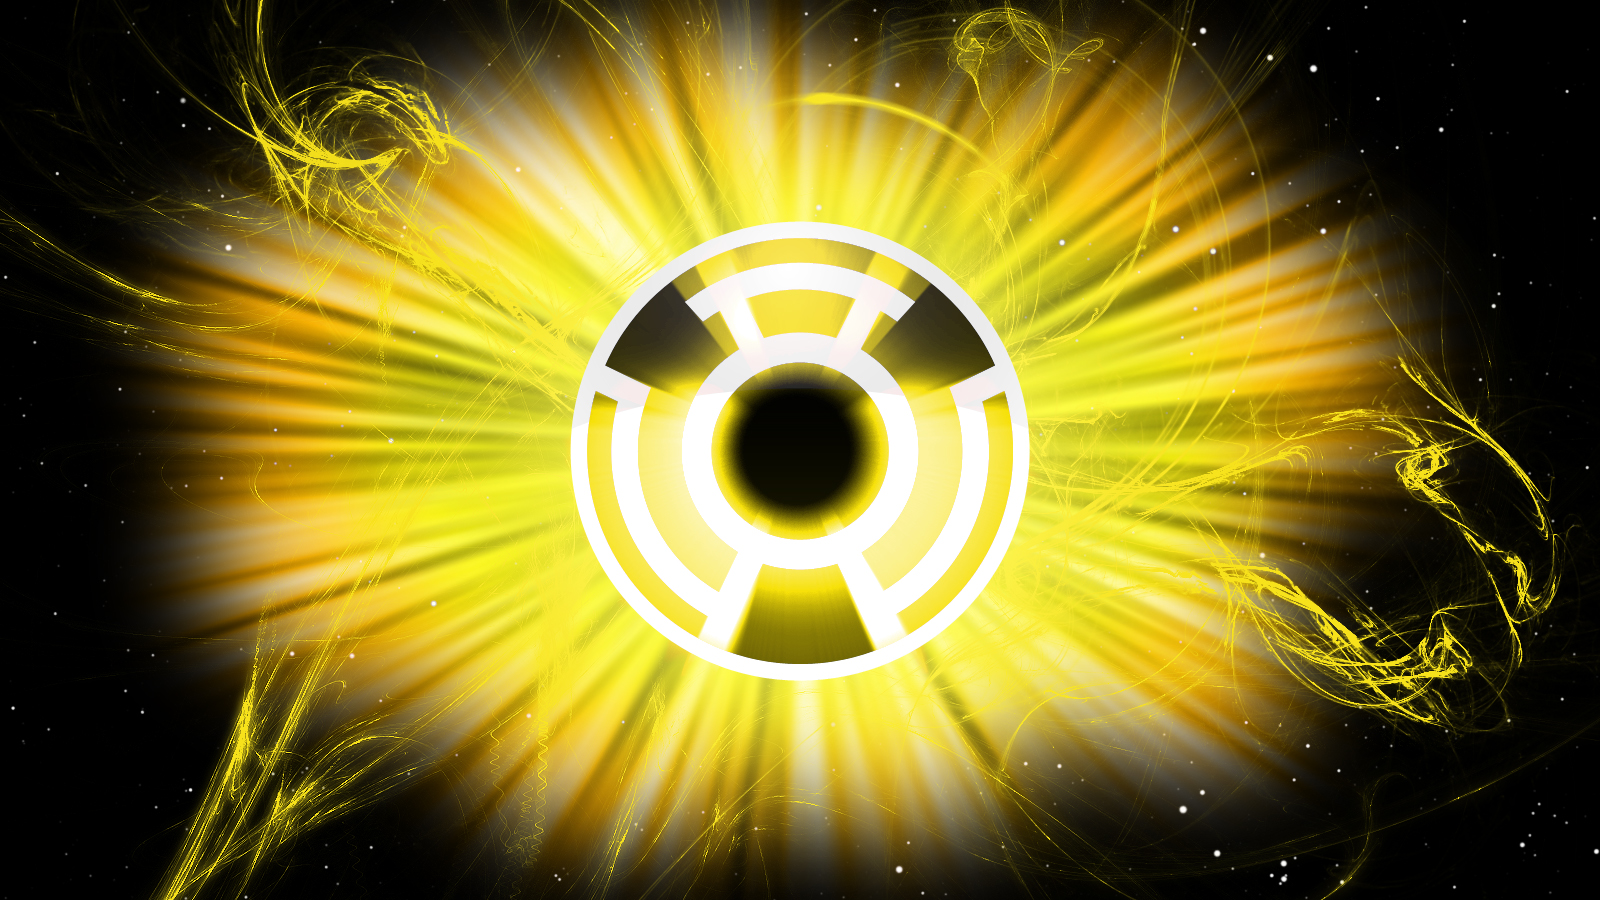 download Lantern Corps Wallpaper 7 1600 X 900 stmednet 1600x900